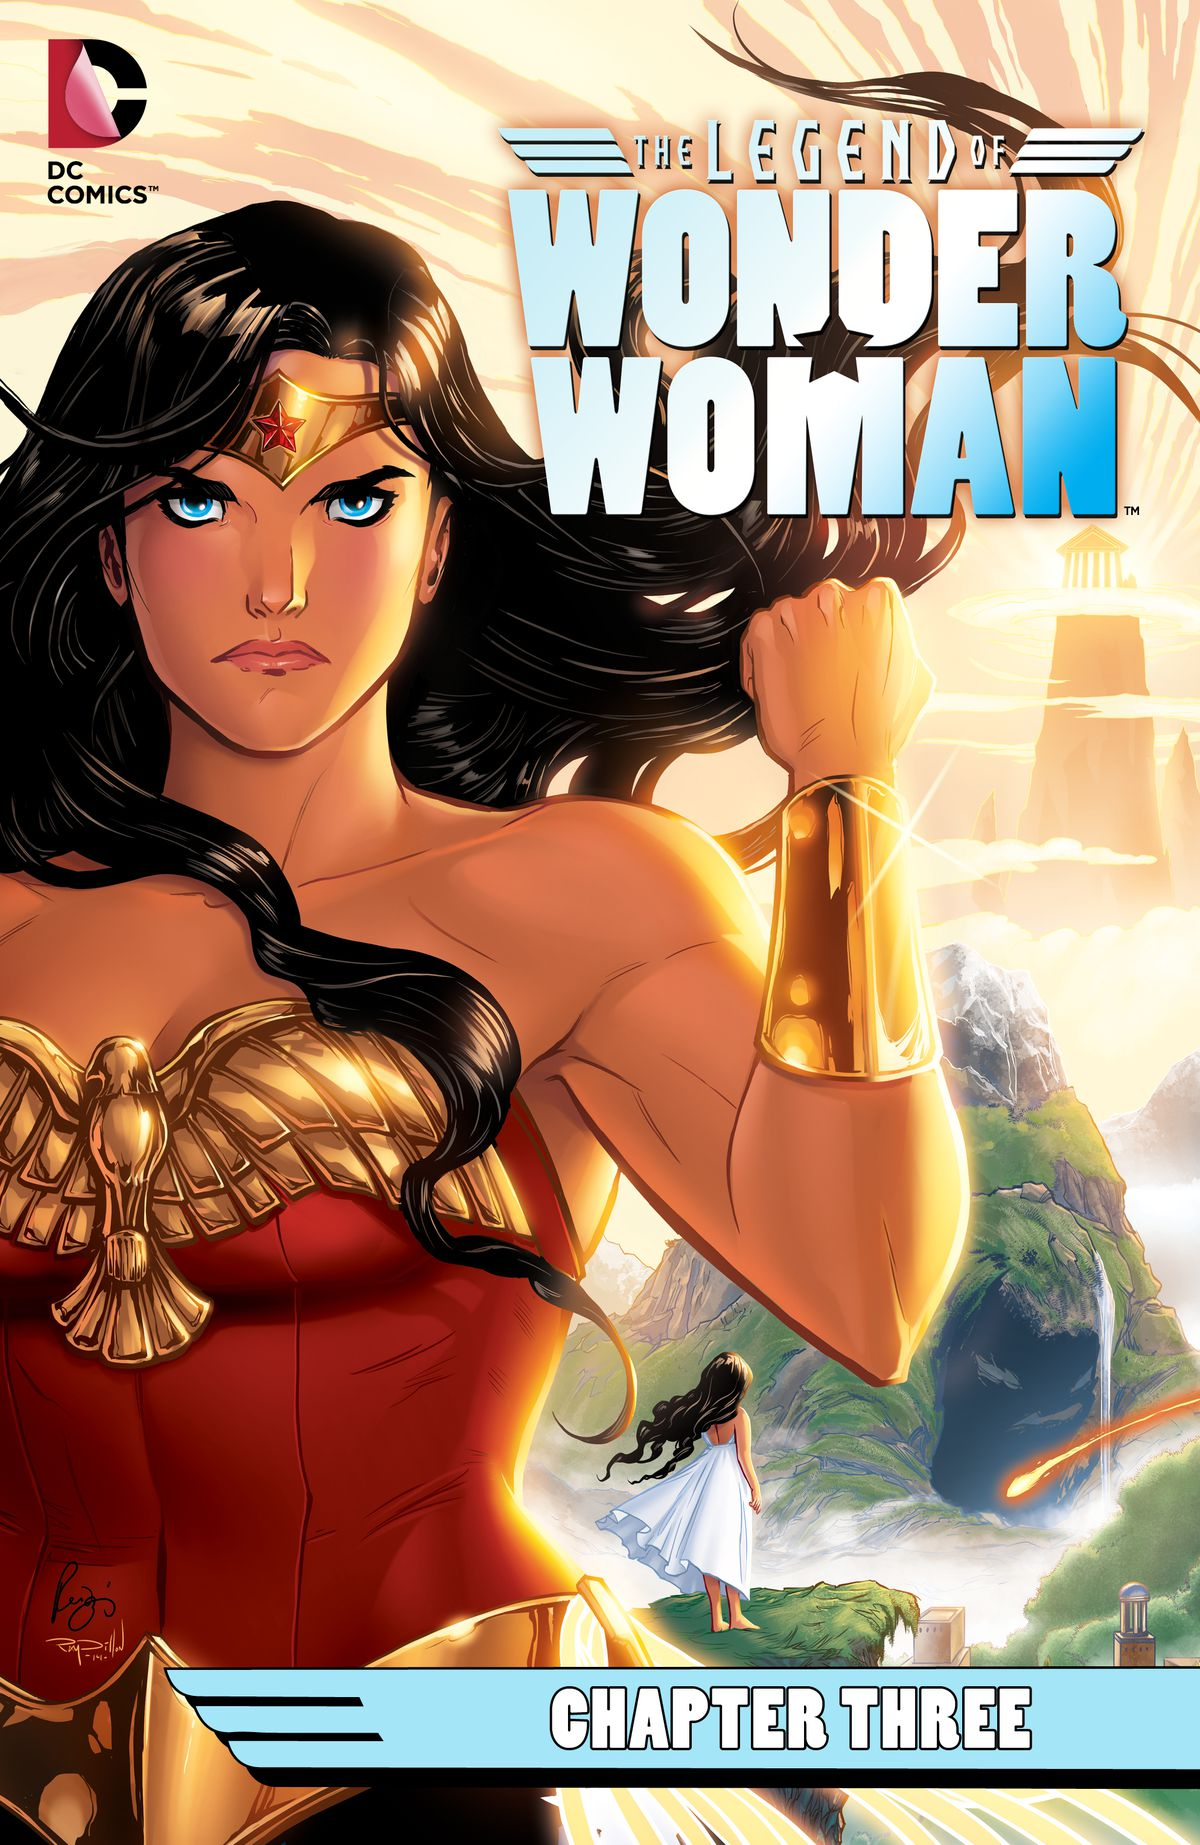 The cover of The Legend of Wonder Woman